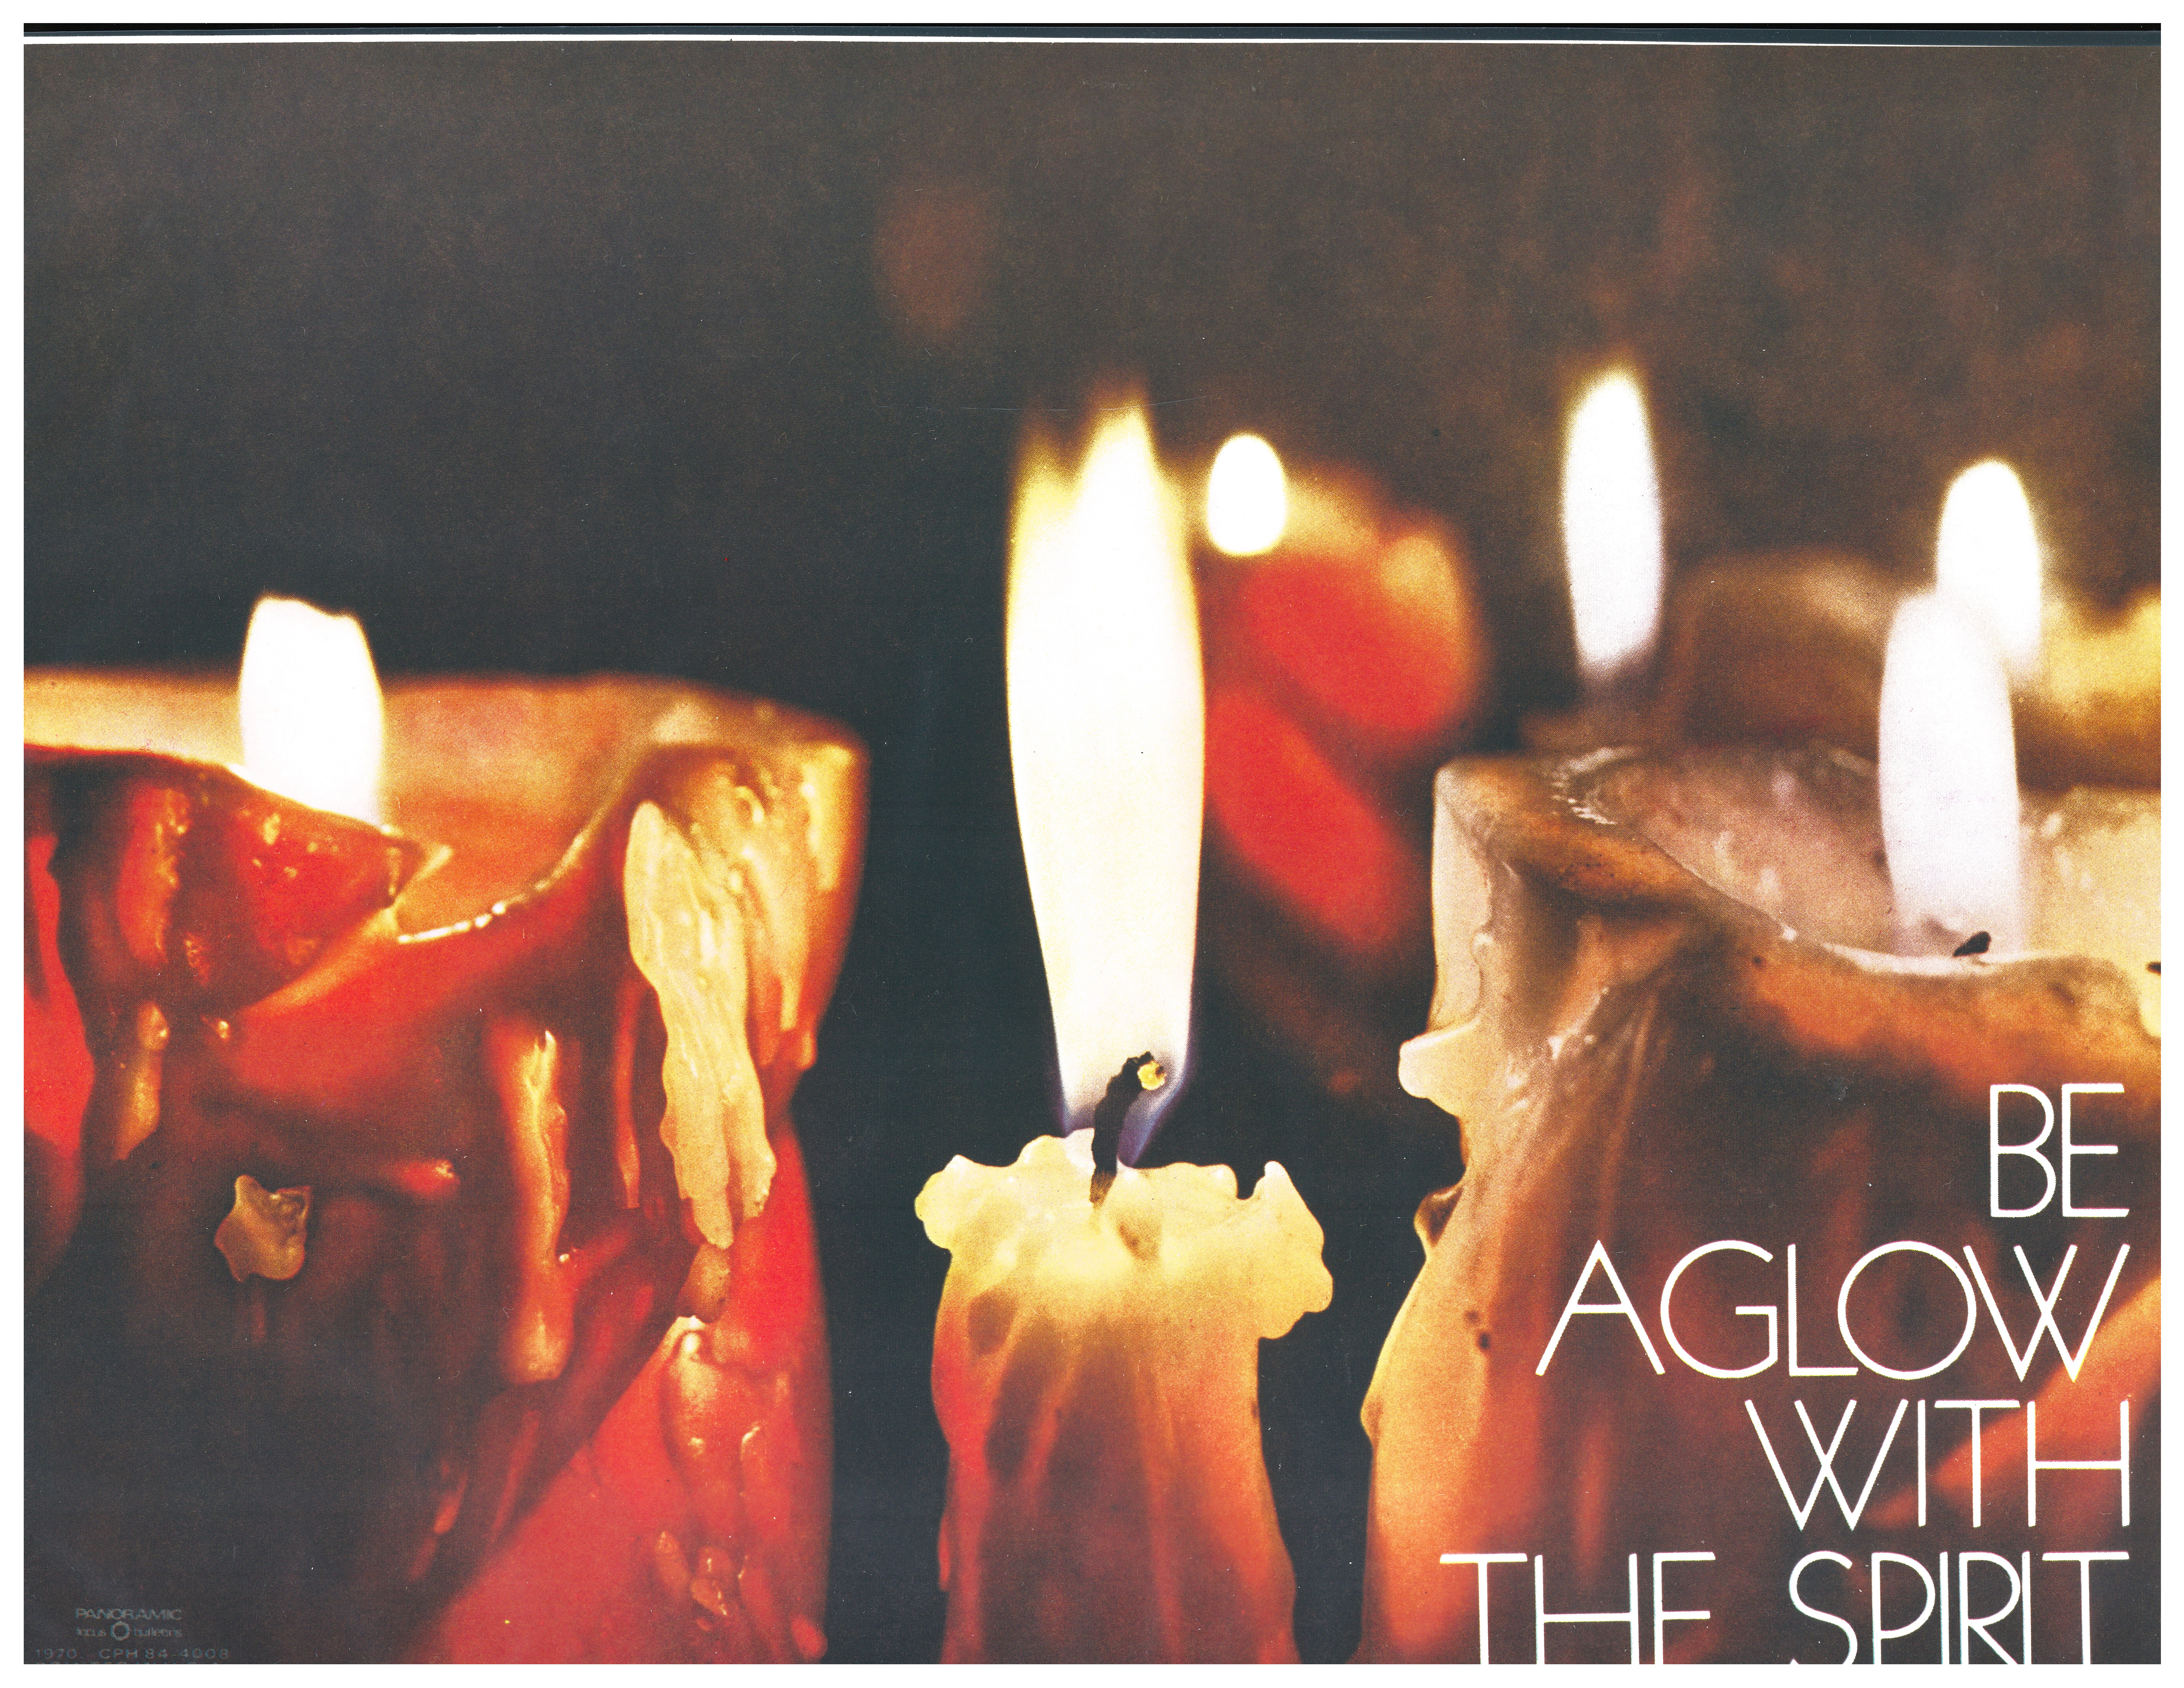 Bulletin Covers Confirmation Be Aglow With The Spirit-1970